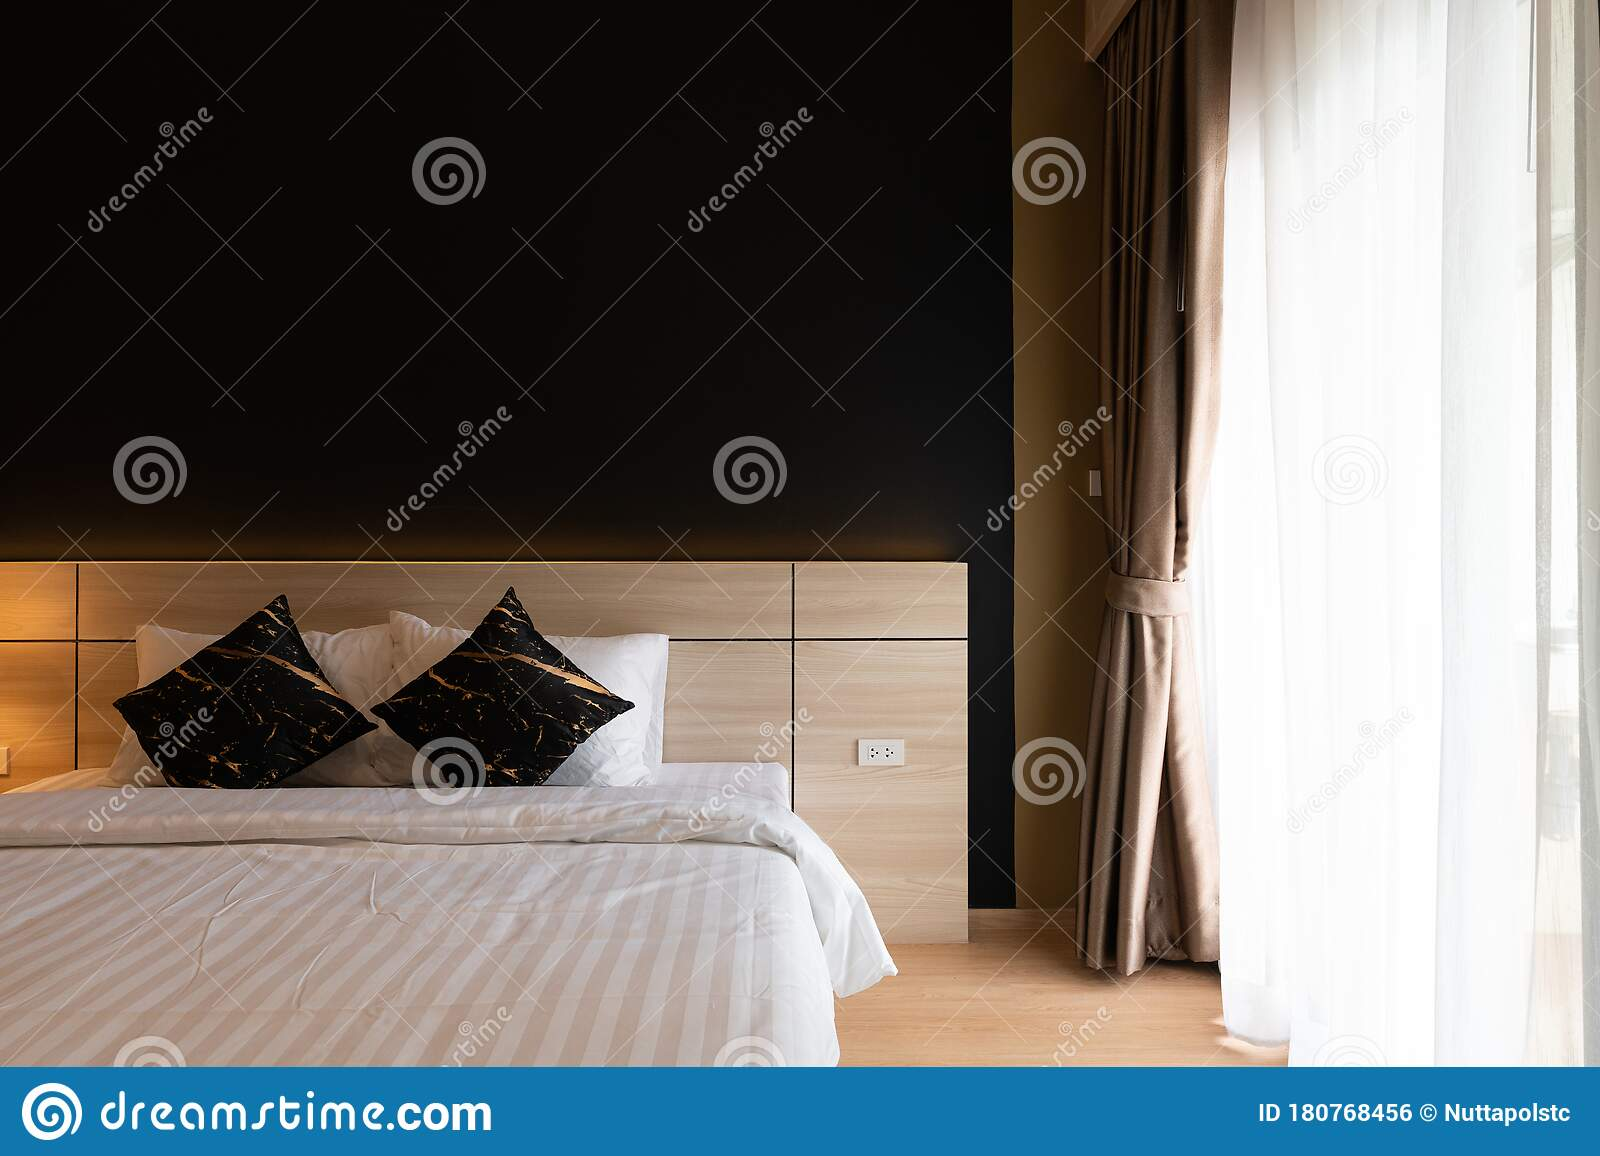 Stylish Bedroom Corner With Wooden Headboard And Bed With Soft Pillows Setting With Navy Blue Painted Wall In Natural Light Stock Photo Image Of Fabric Blanket 180768456